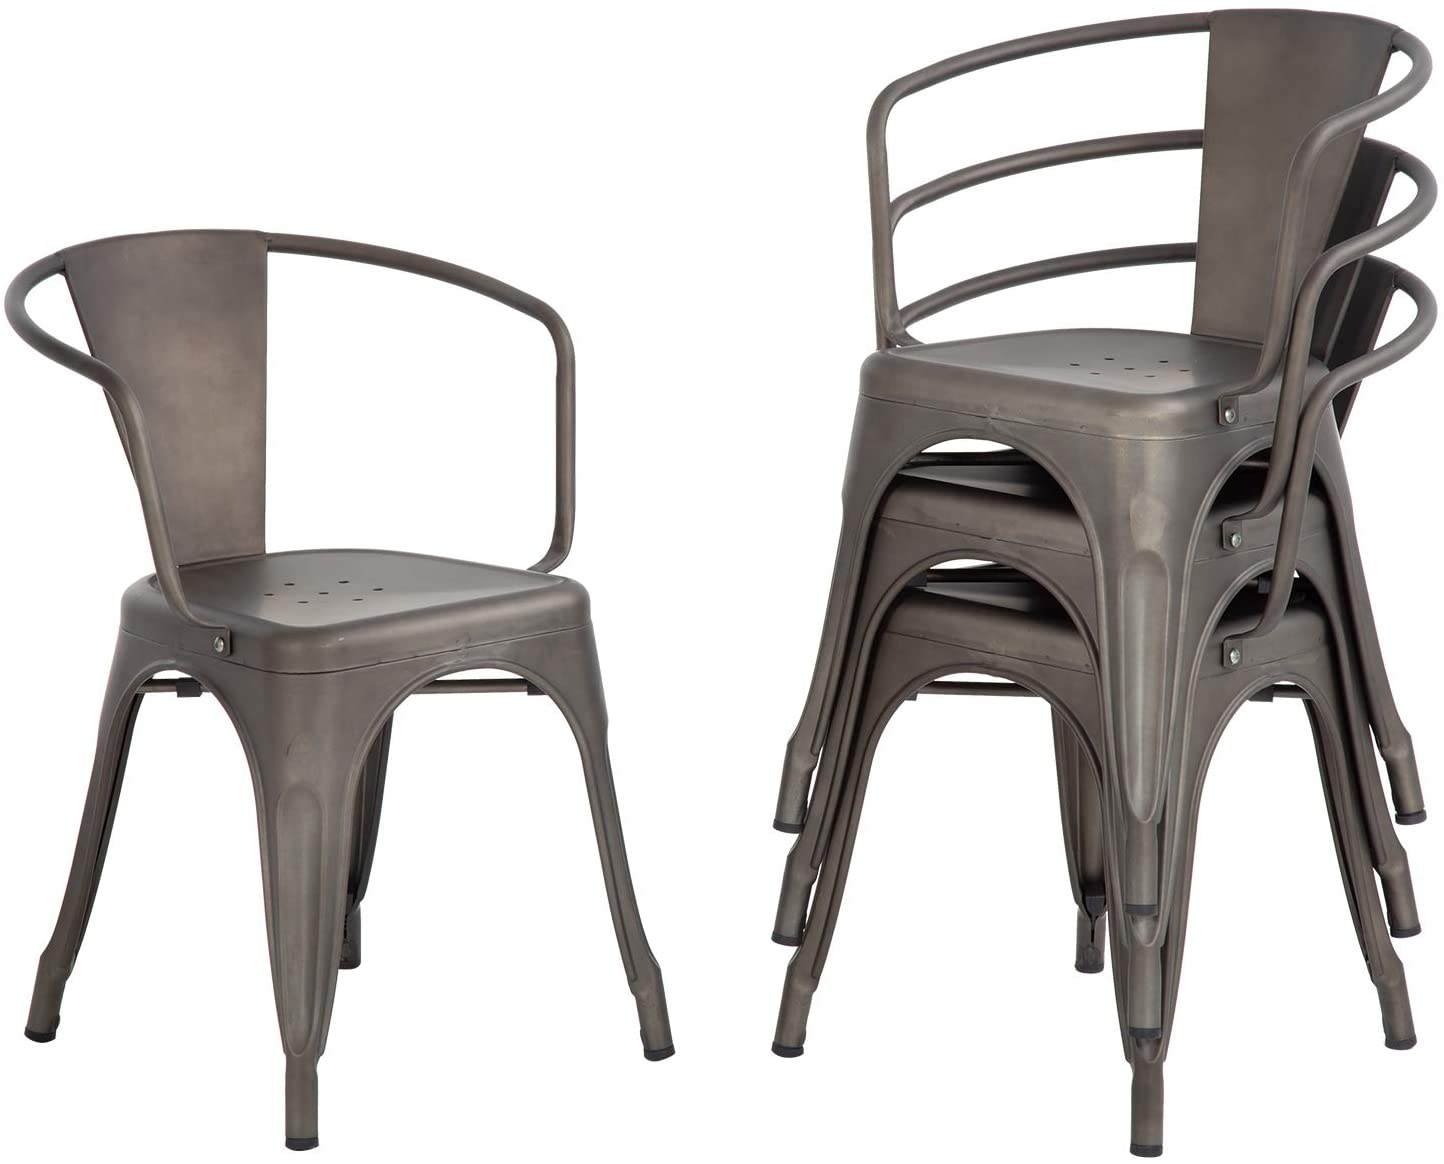 Metal Dining Chairs Set of 9 Patio Chiar Indoor Outdoor Metal Chairs  Kitchen Metal Chairs 9 Inch Seat Height Restaurant Chair 9LBS Weight  Capacity